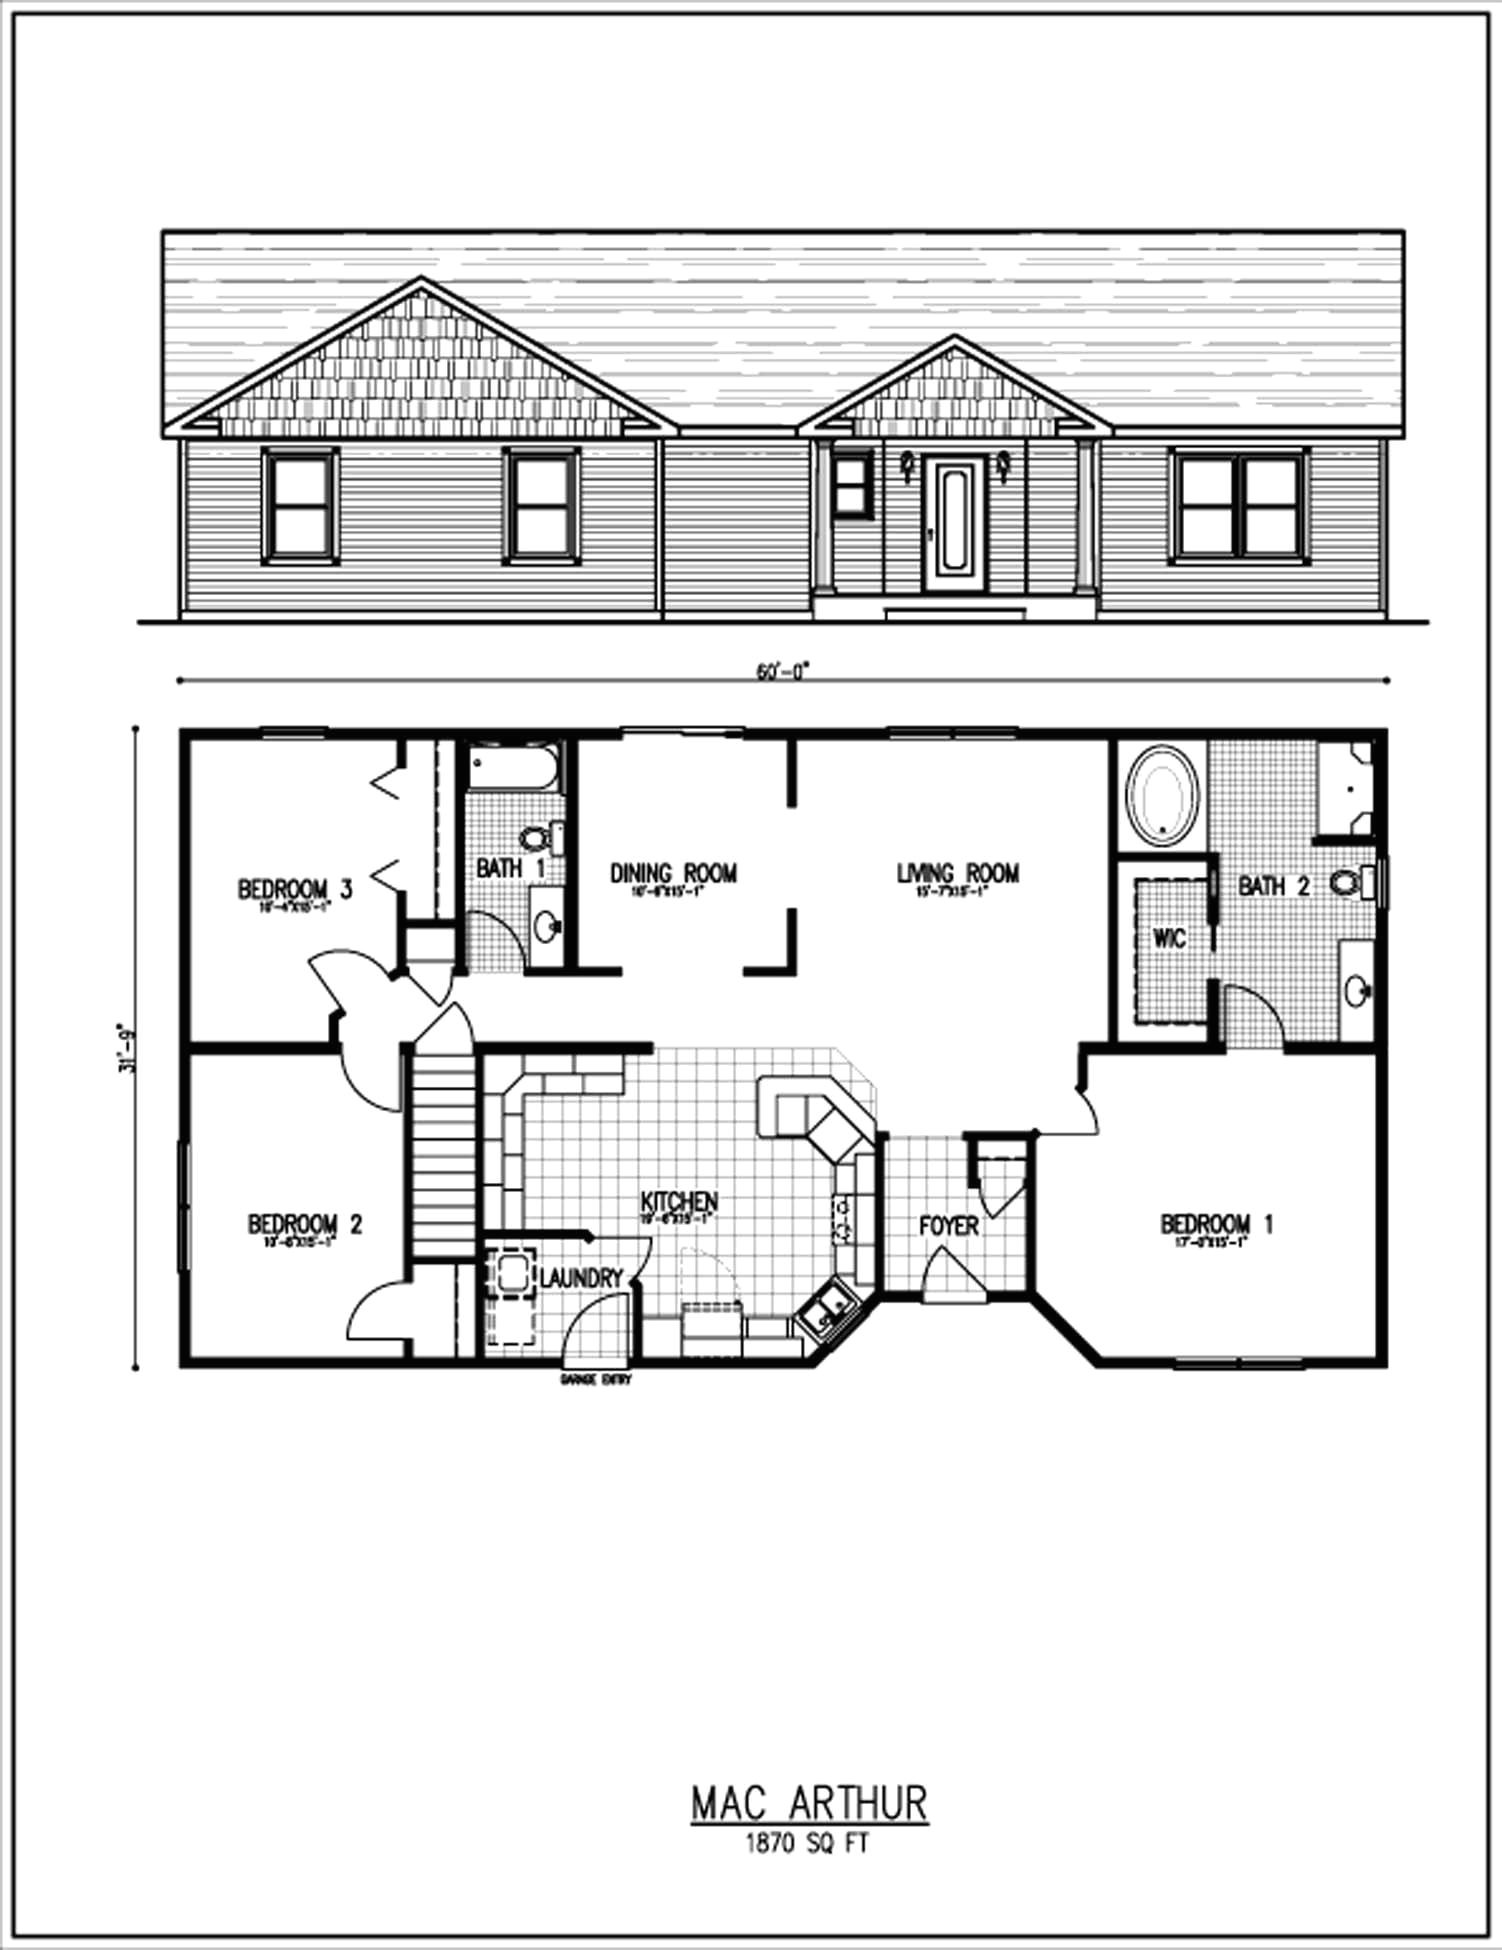 4 bedroom ranch style home plans new simple ranch house plans simple floor plans best design